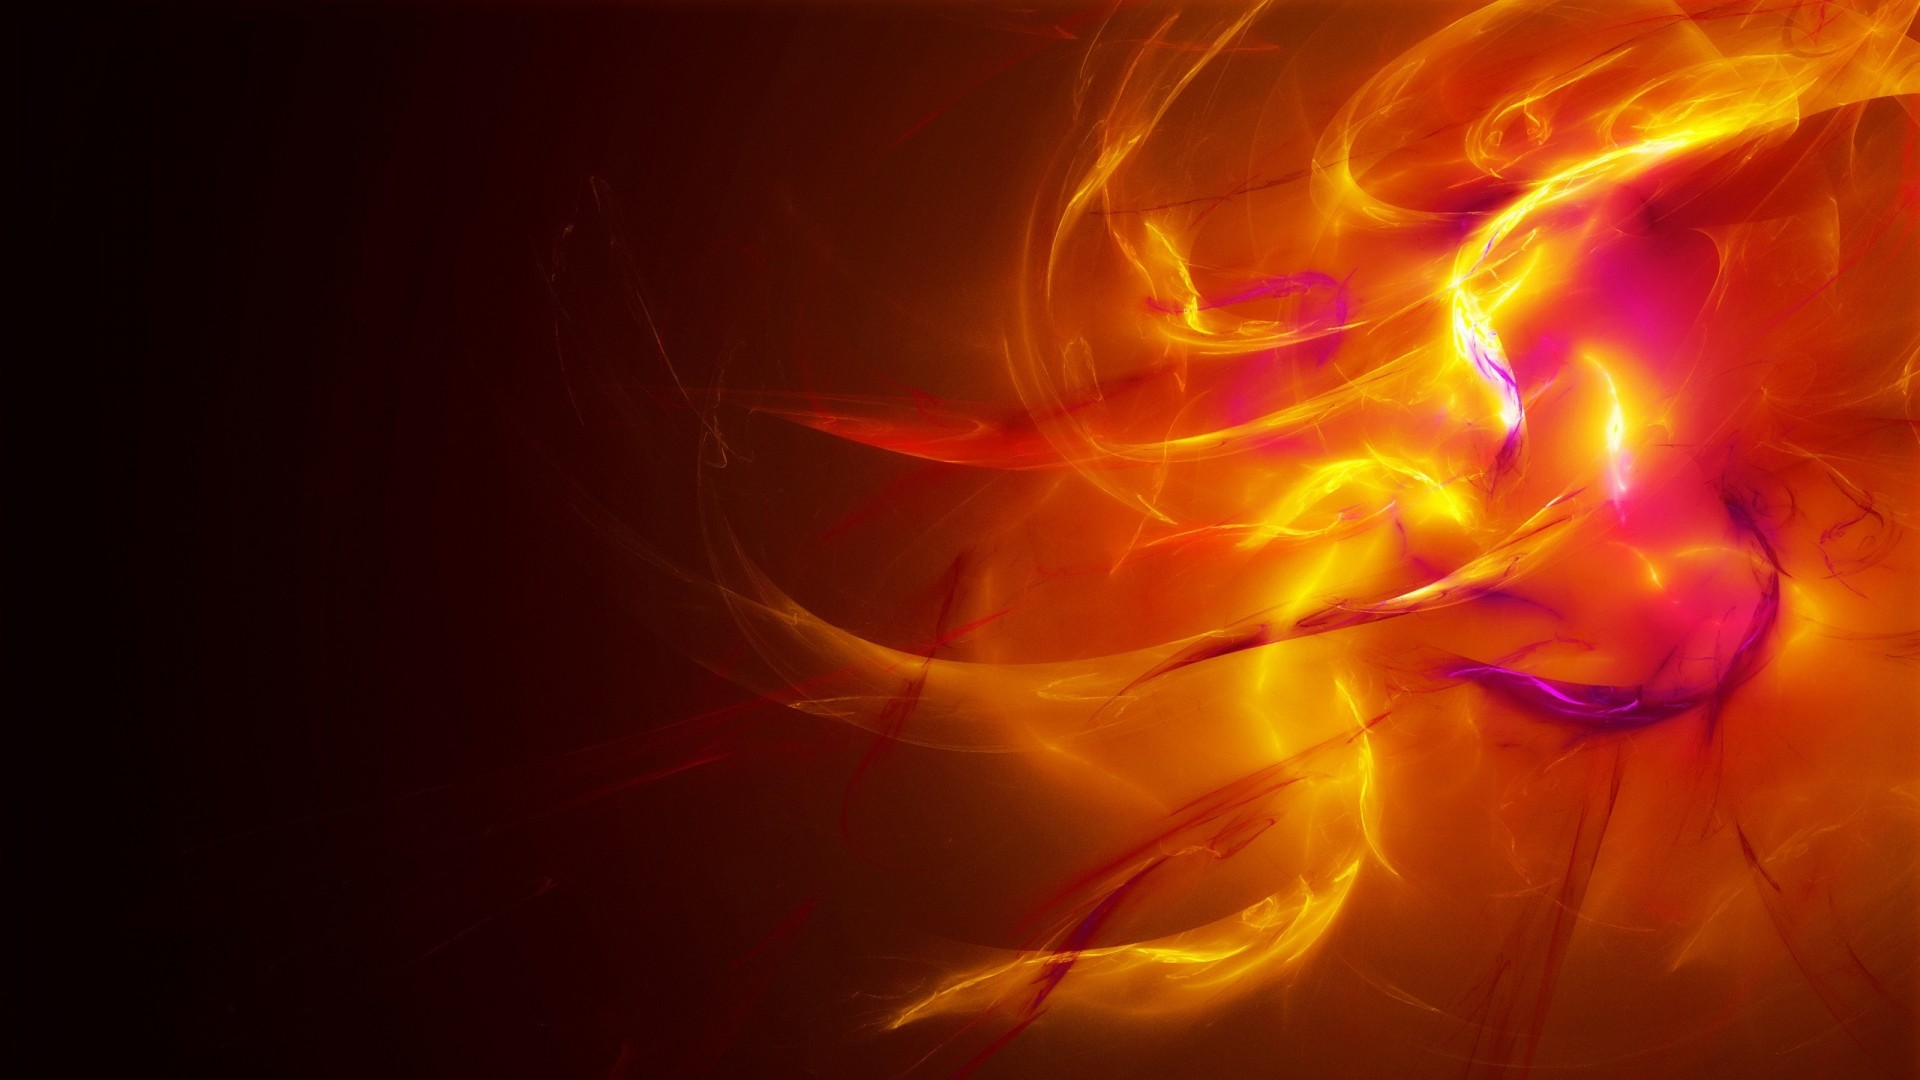 Wallpaper fire, flame, explosion, line, shadow